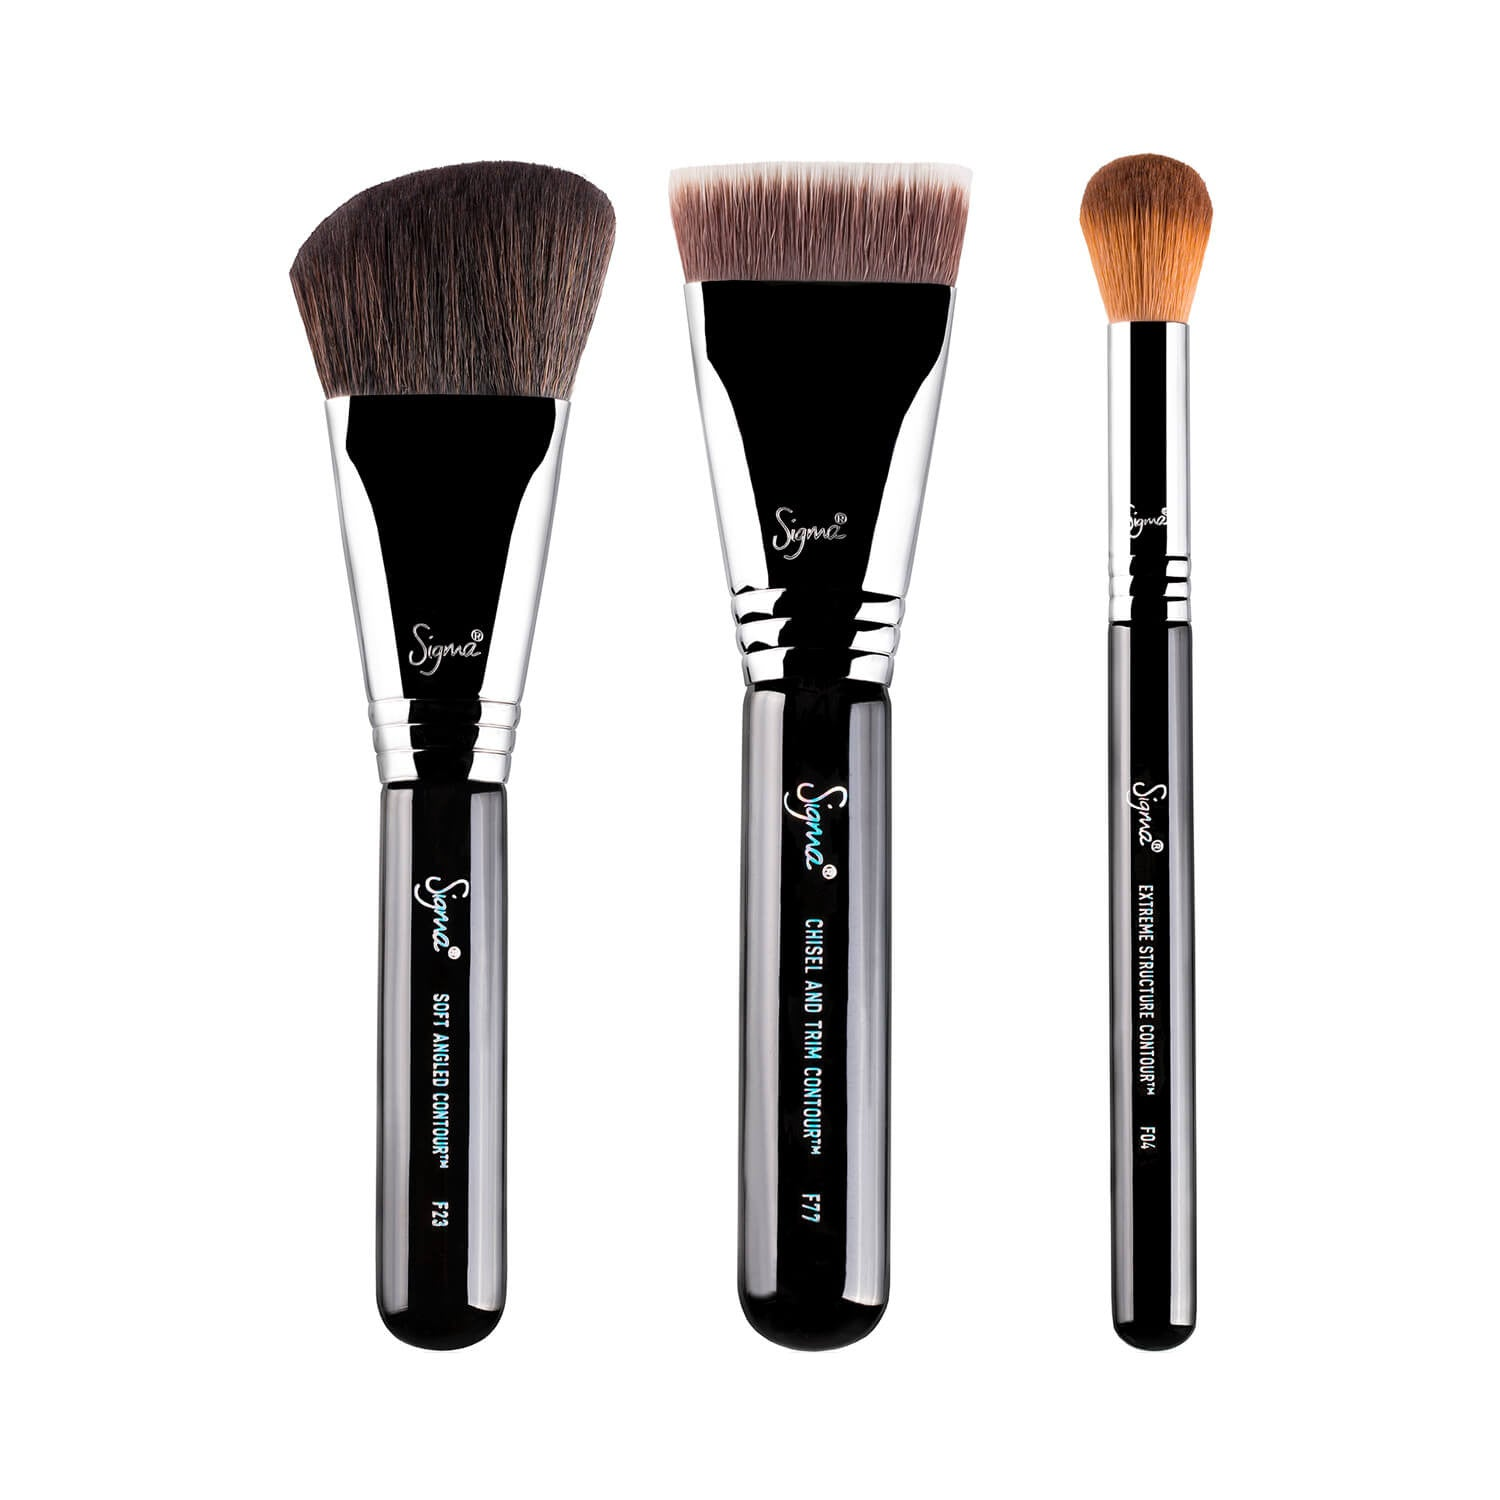 Sigma brush set australia